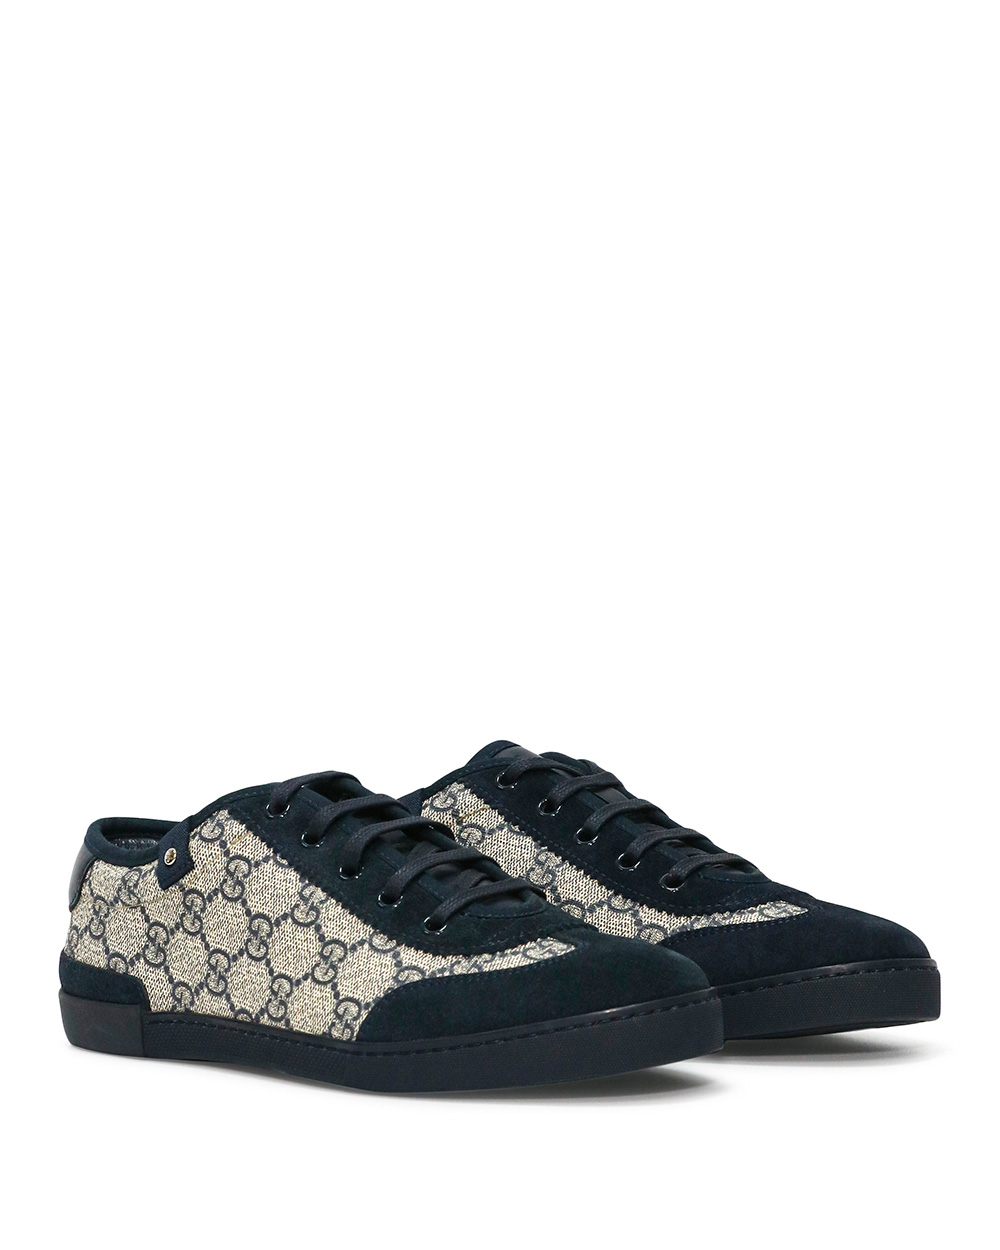 GUCCI Logo Sneakers 246338KGDQ0 1